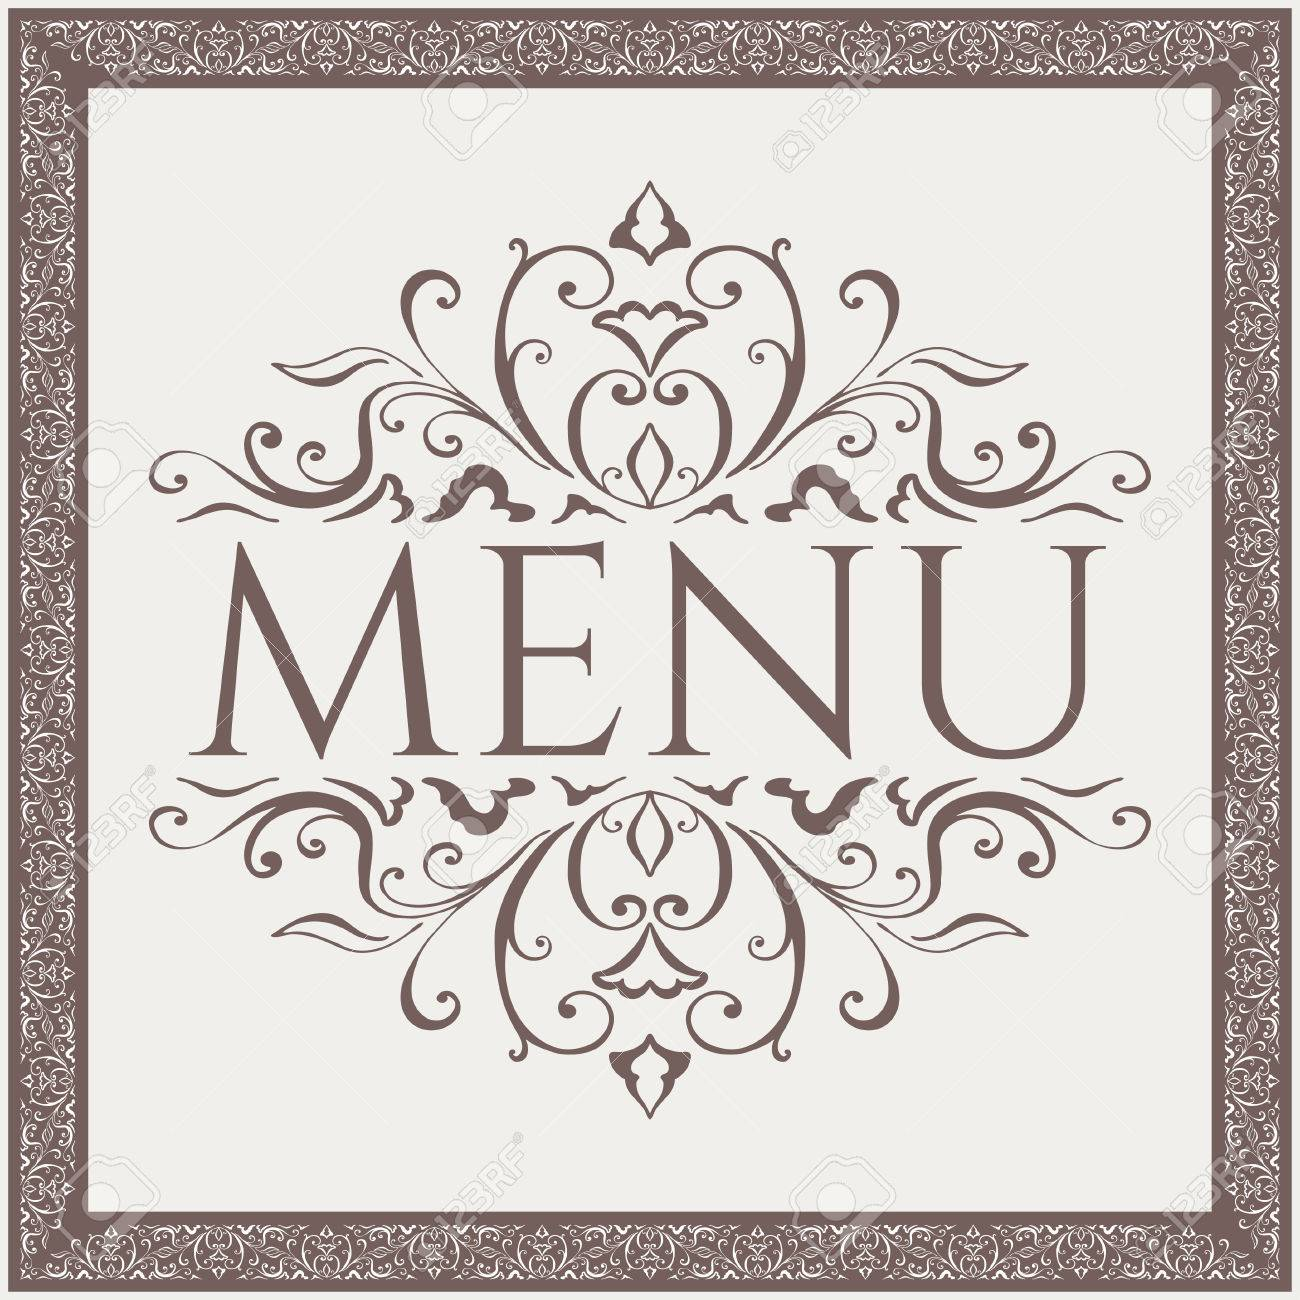 Elegant Restaurant Menu Design With Beauty Pattern Vector Illustration Royalty Free Cliparts Vectors And Stock Illustration Image 39144866